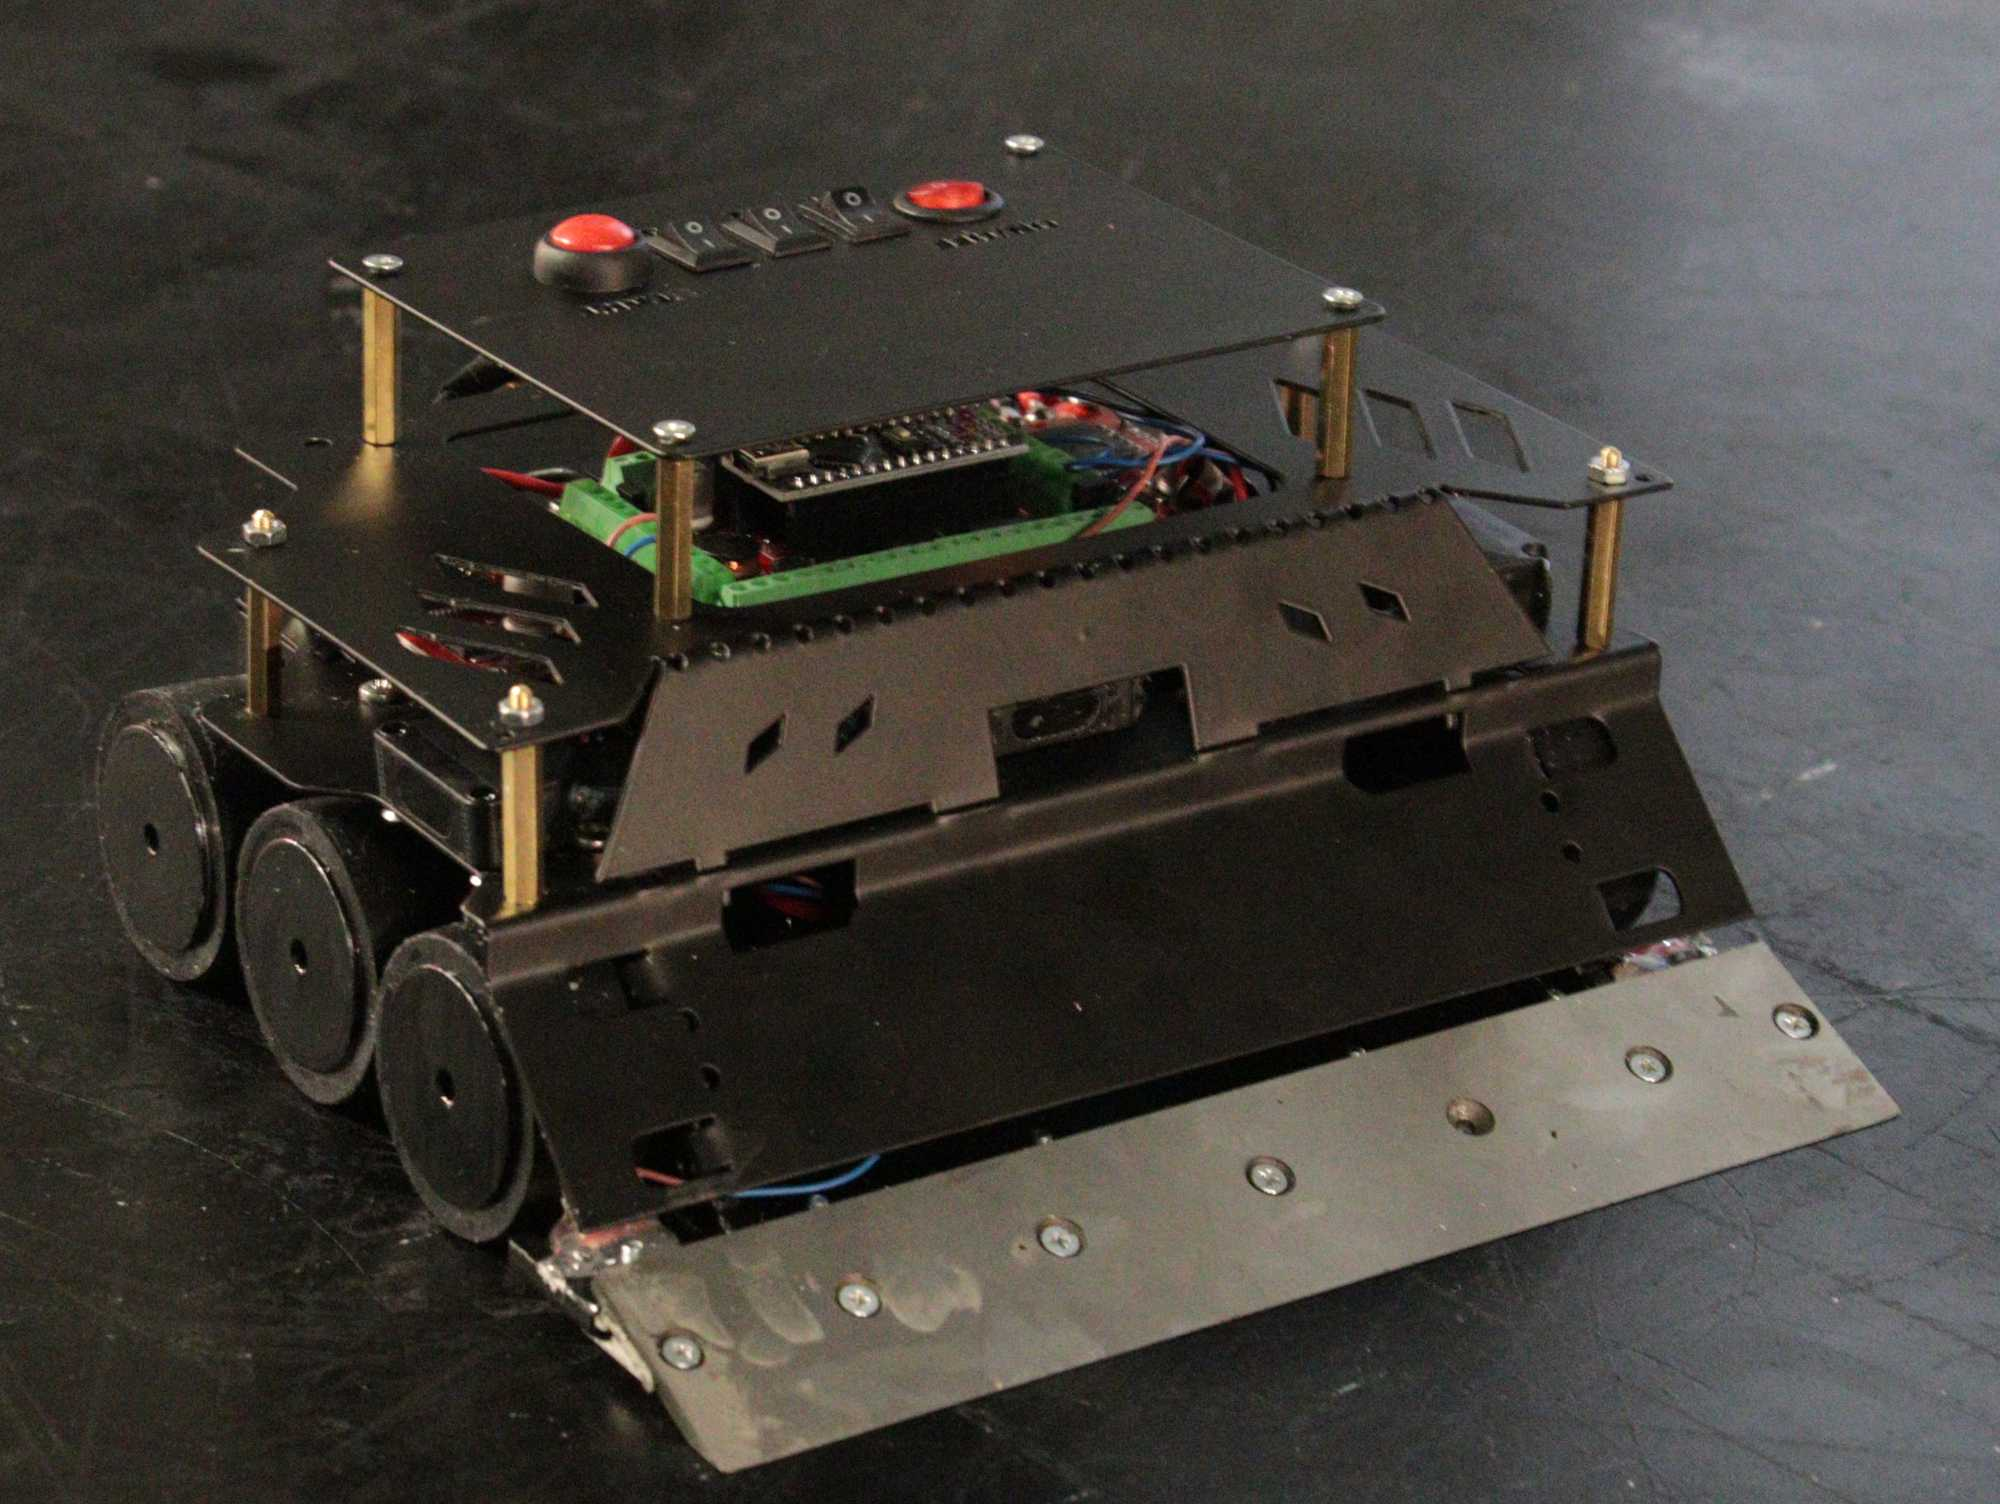 ARES 6x6 Sumo Robot